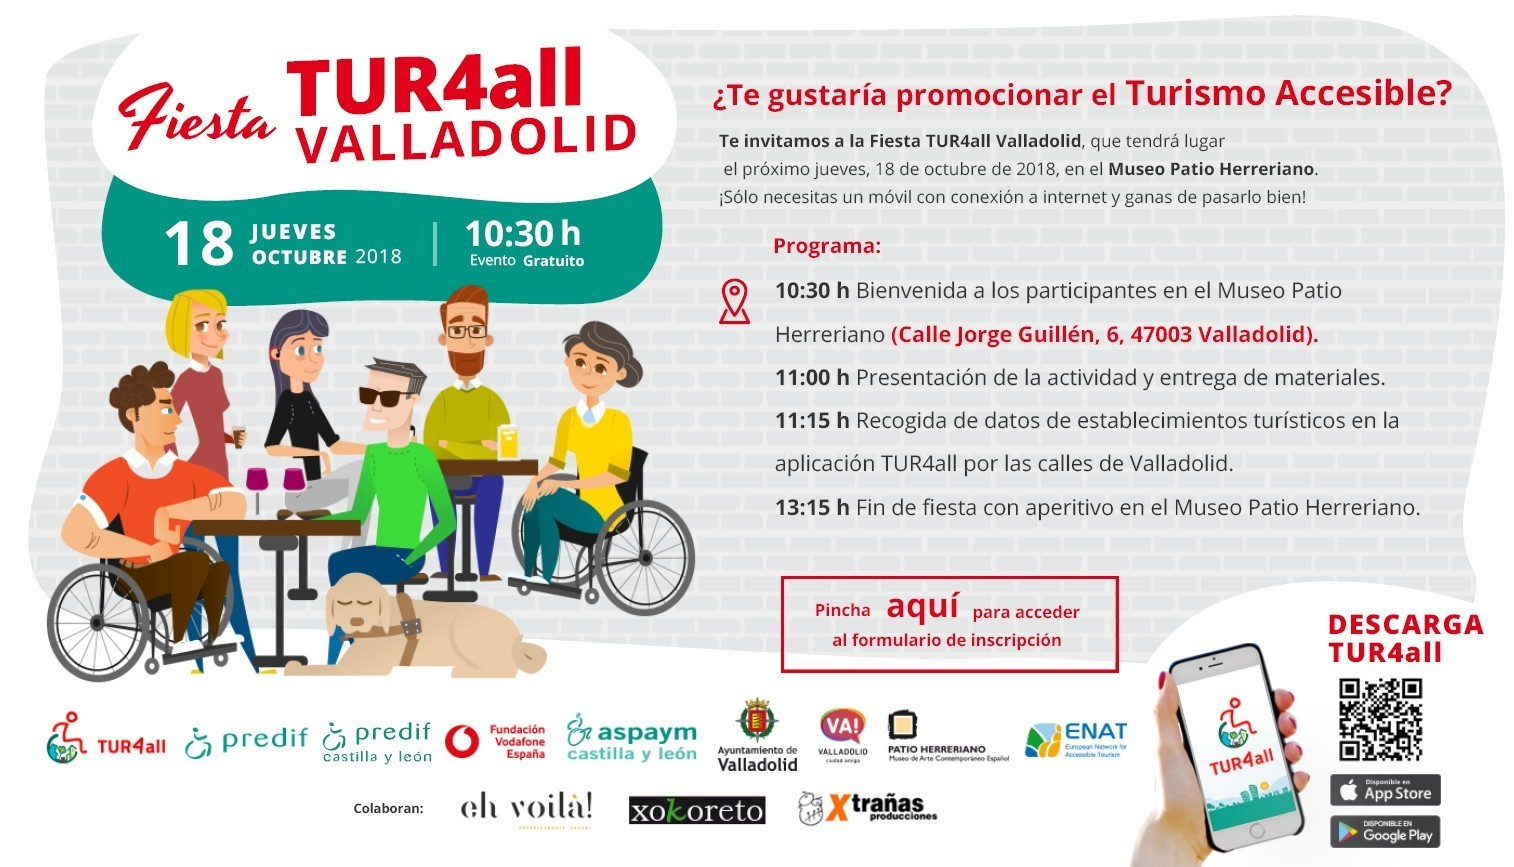 Cover photo of the event de Fiesta TUR4all Valladolid